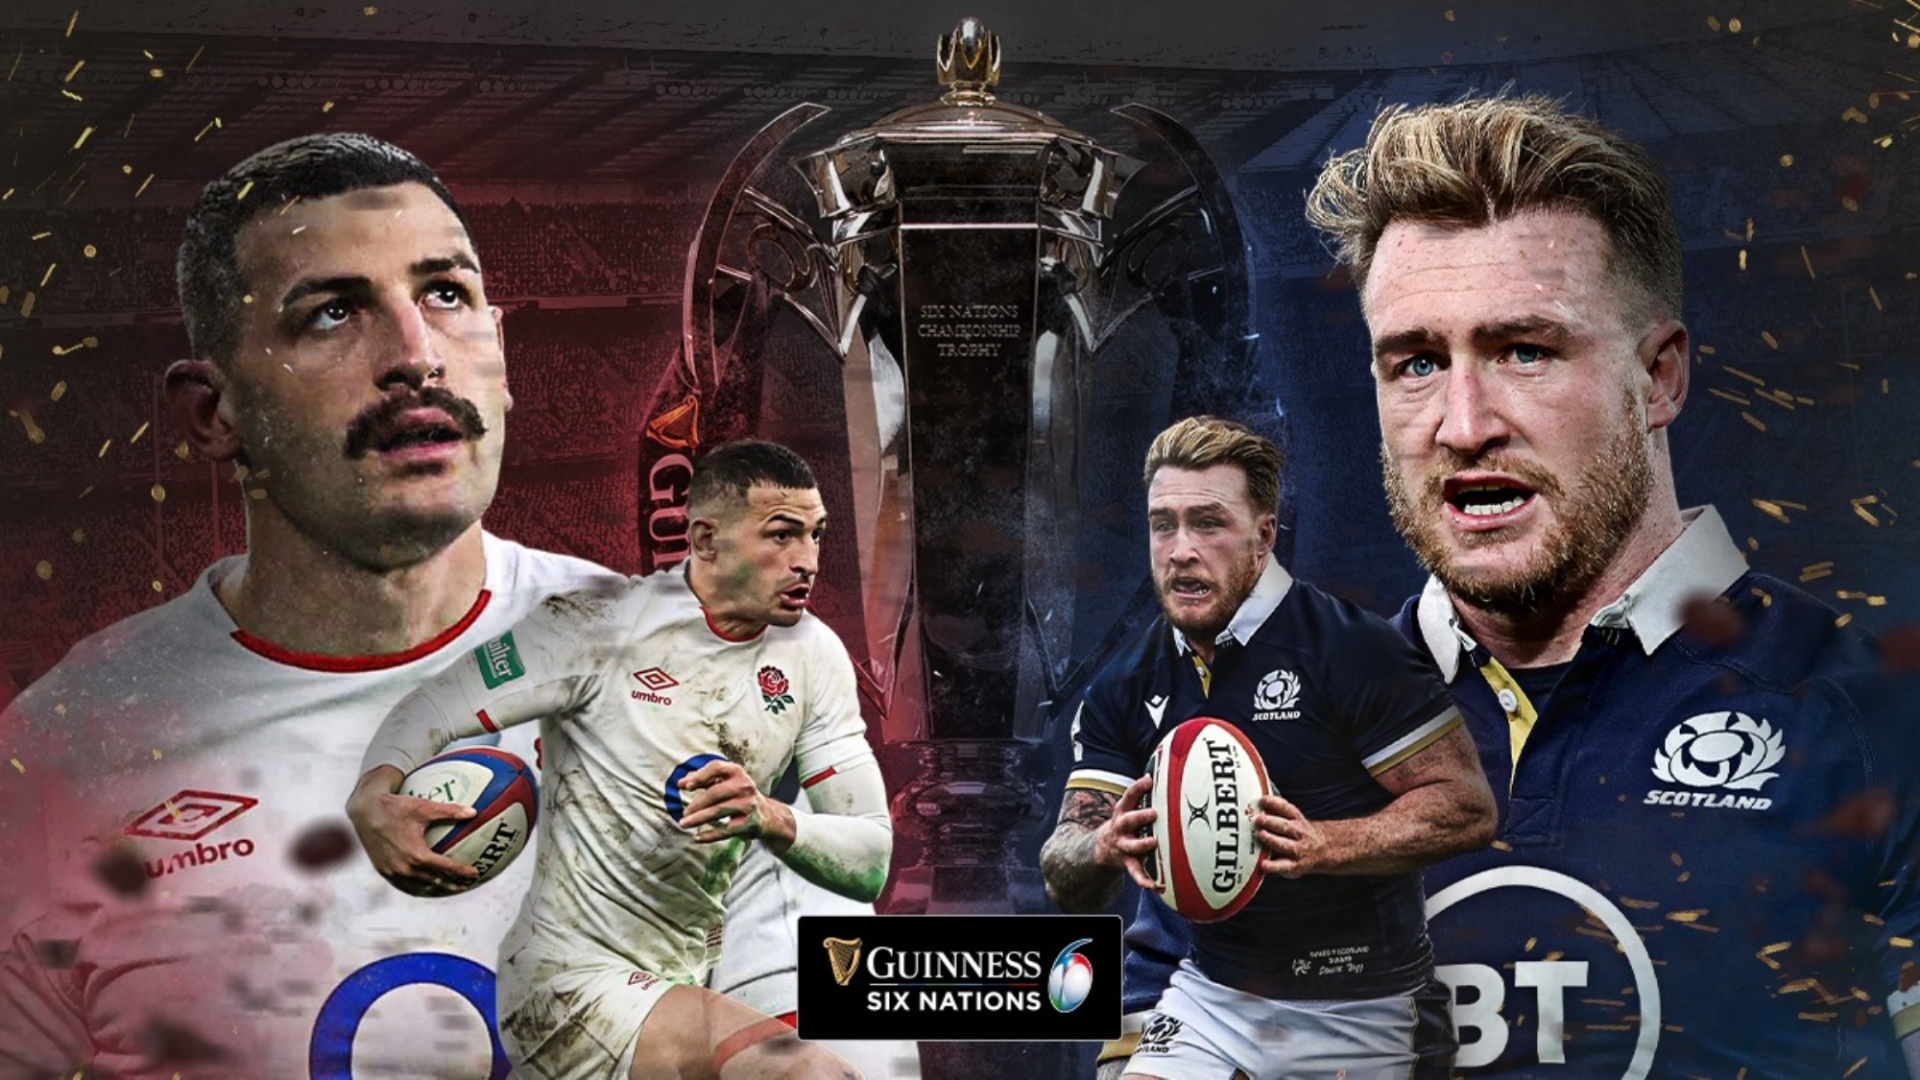 Photo: Six Nations Rugby